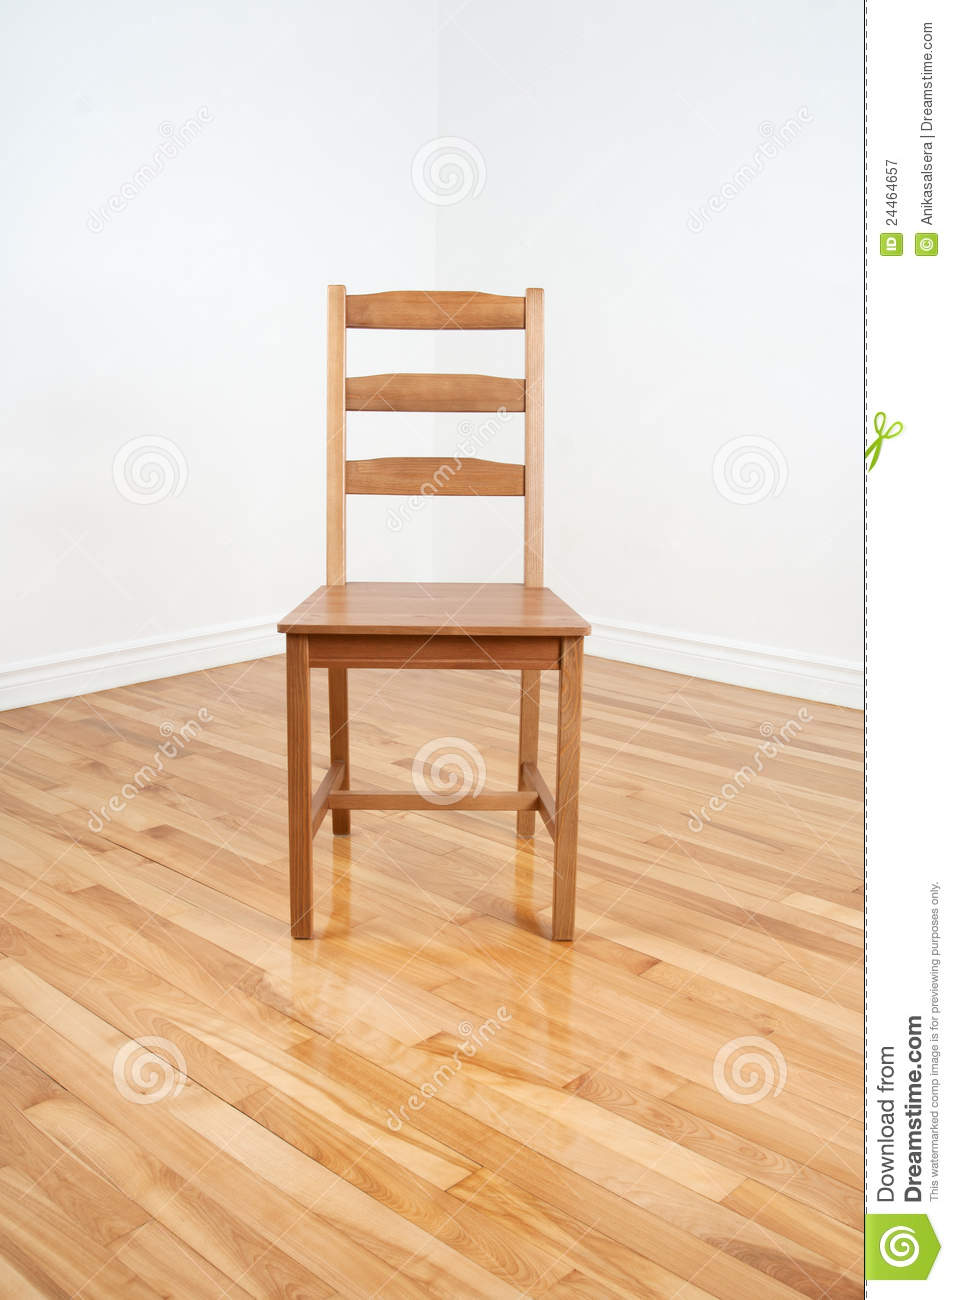 Wooden Chair In The Corner Of A Room Royalty Free Stock Photography ...